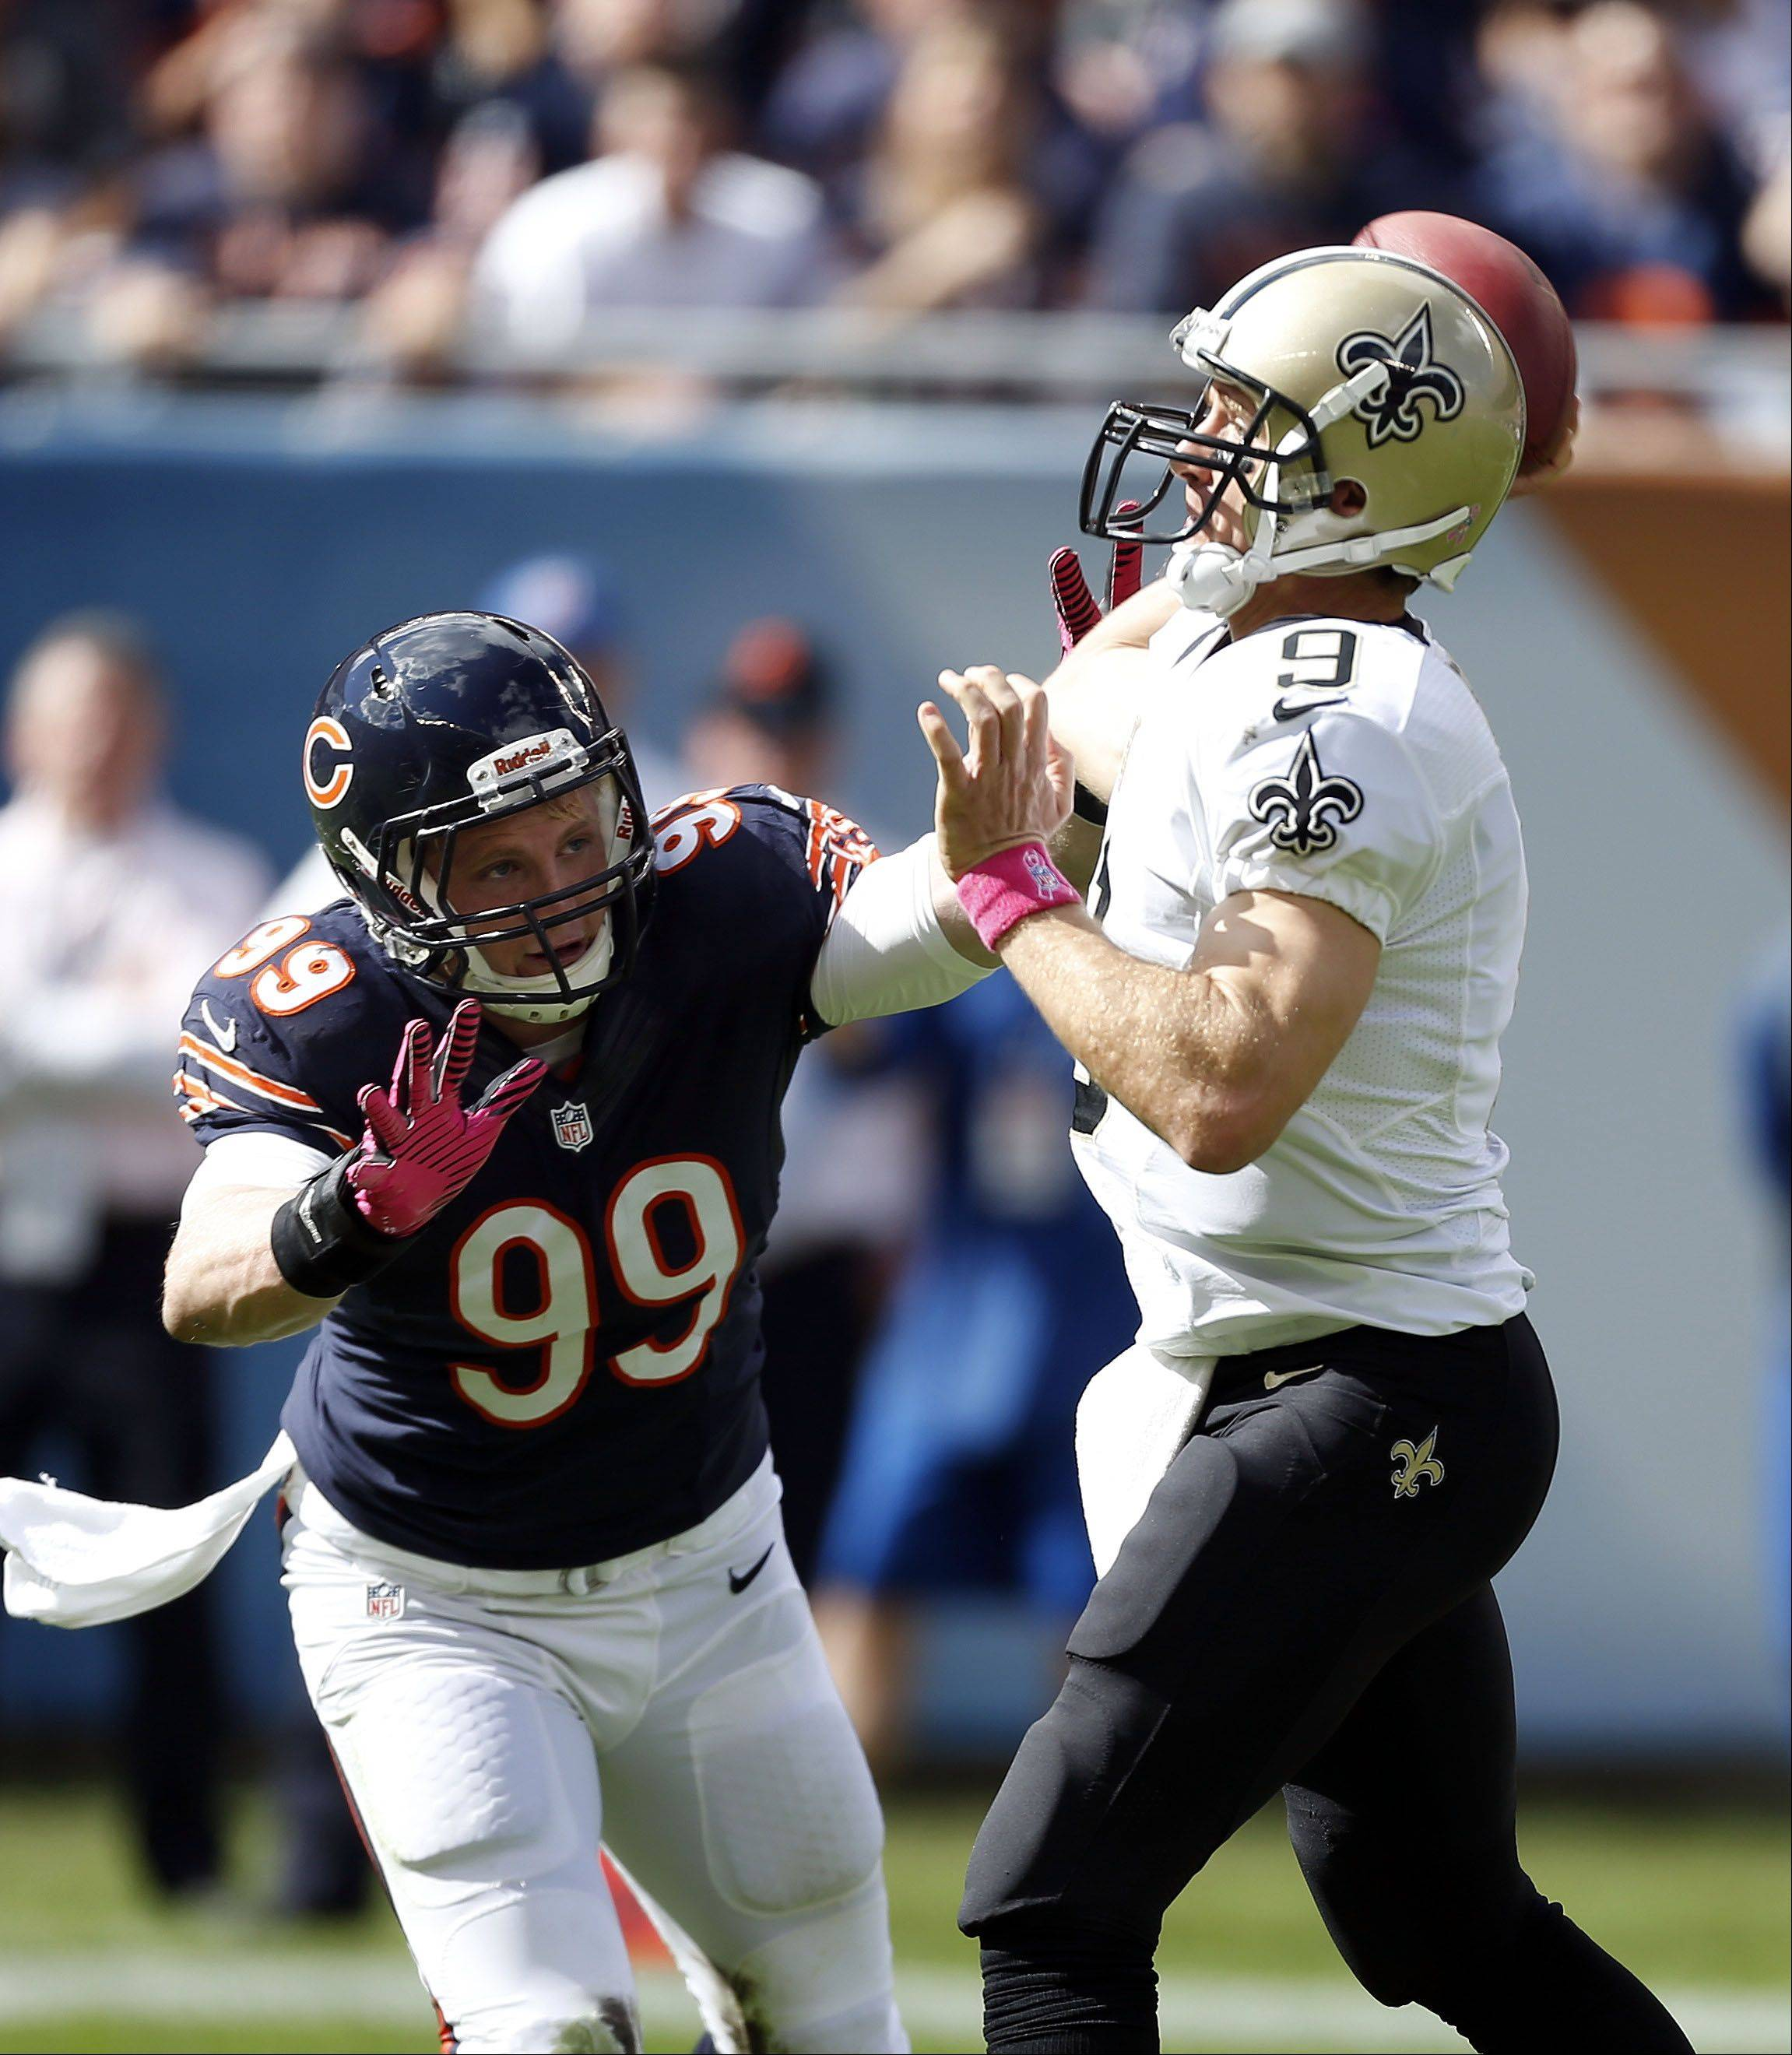 Bears defensive end Shea McClellin pressures Saints quarterback Drew Brees during the Bears� 26-18 loss at Soldier Field in October.